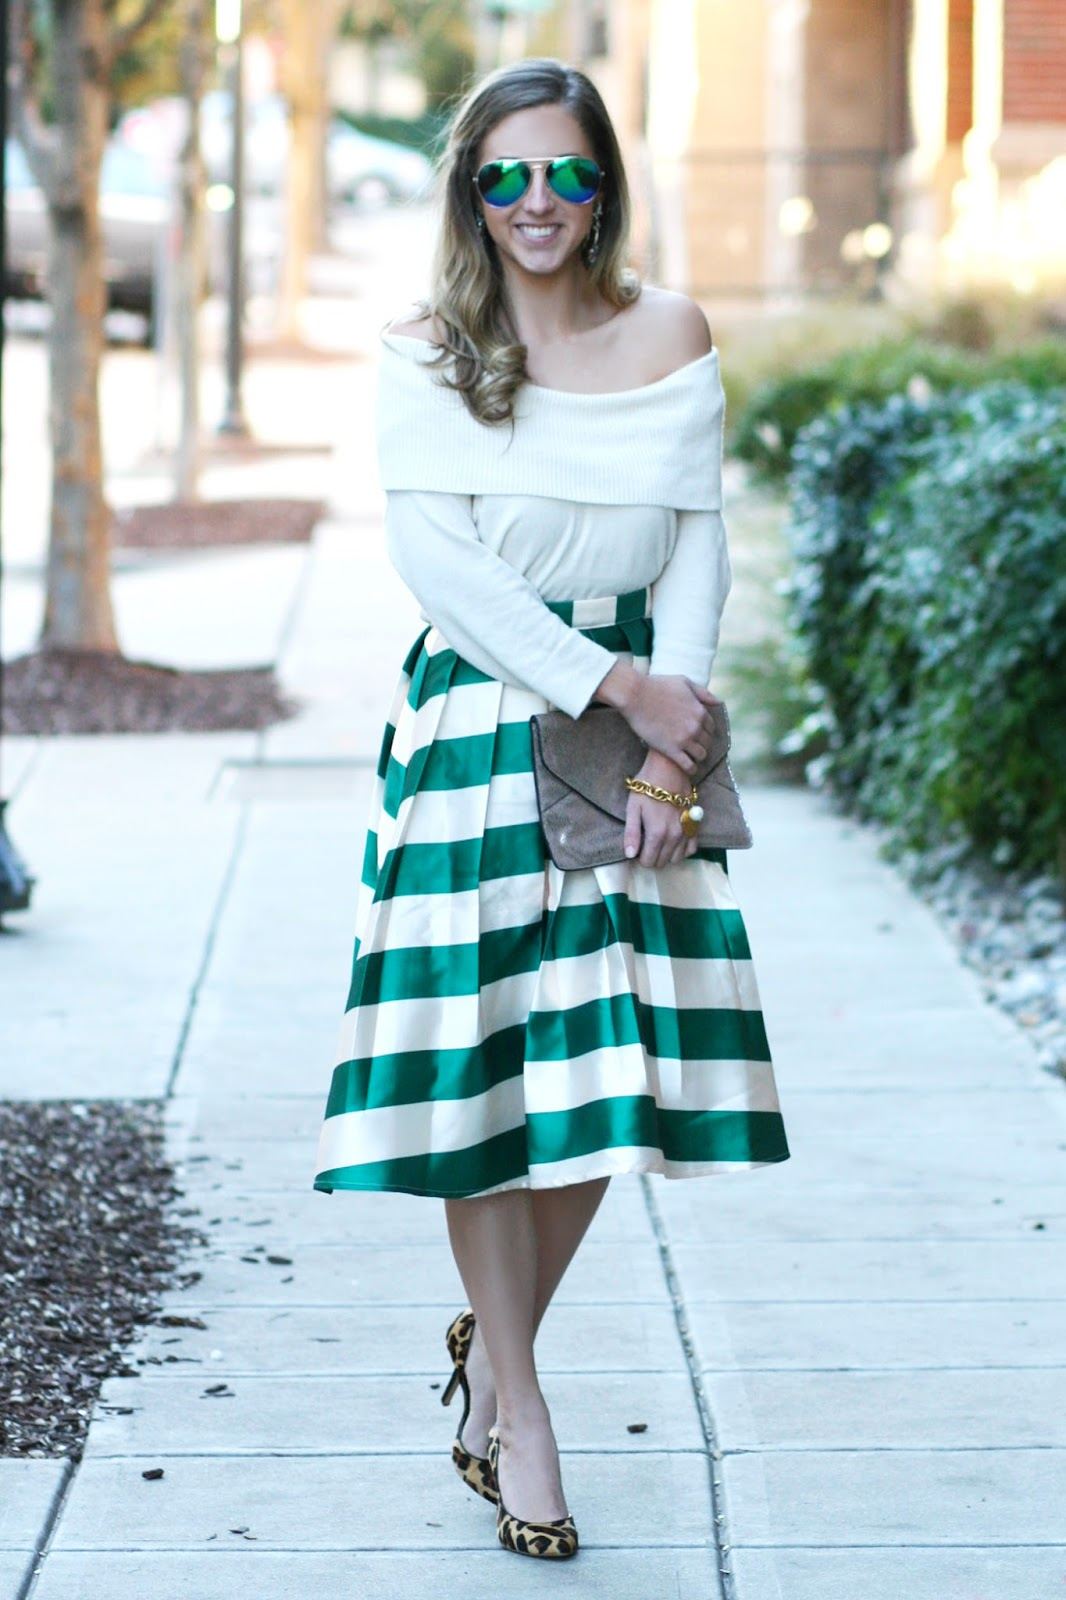 sara-kate-styling-raleigh-north-carolina-blogger-collaboration